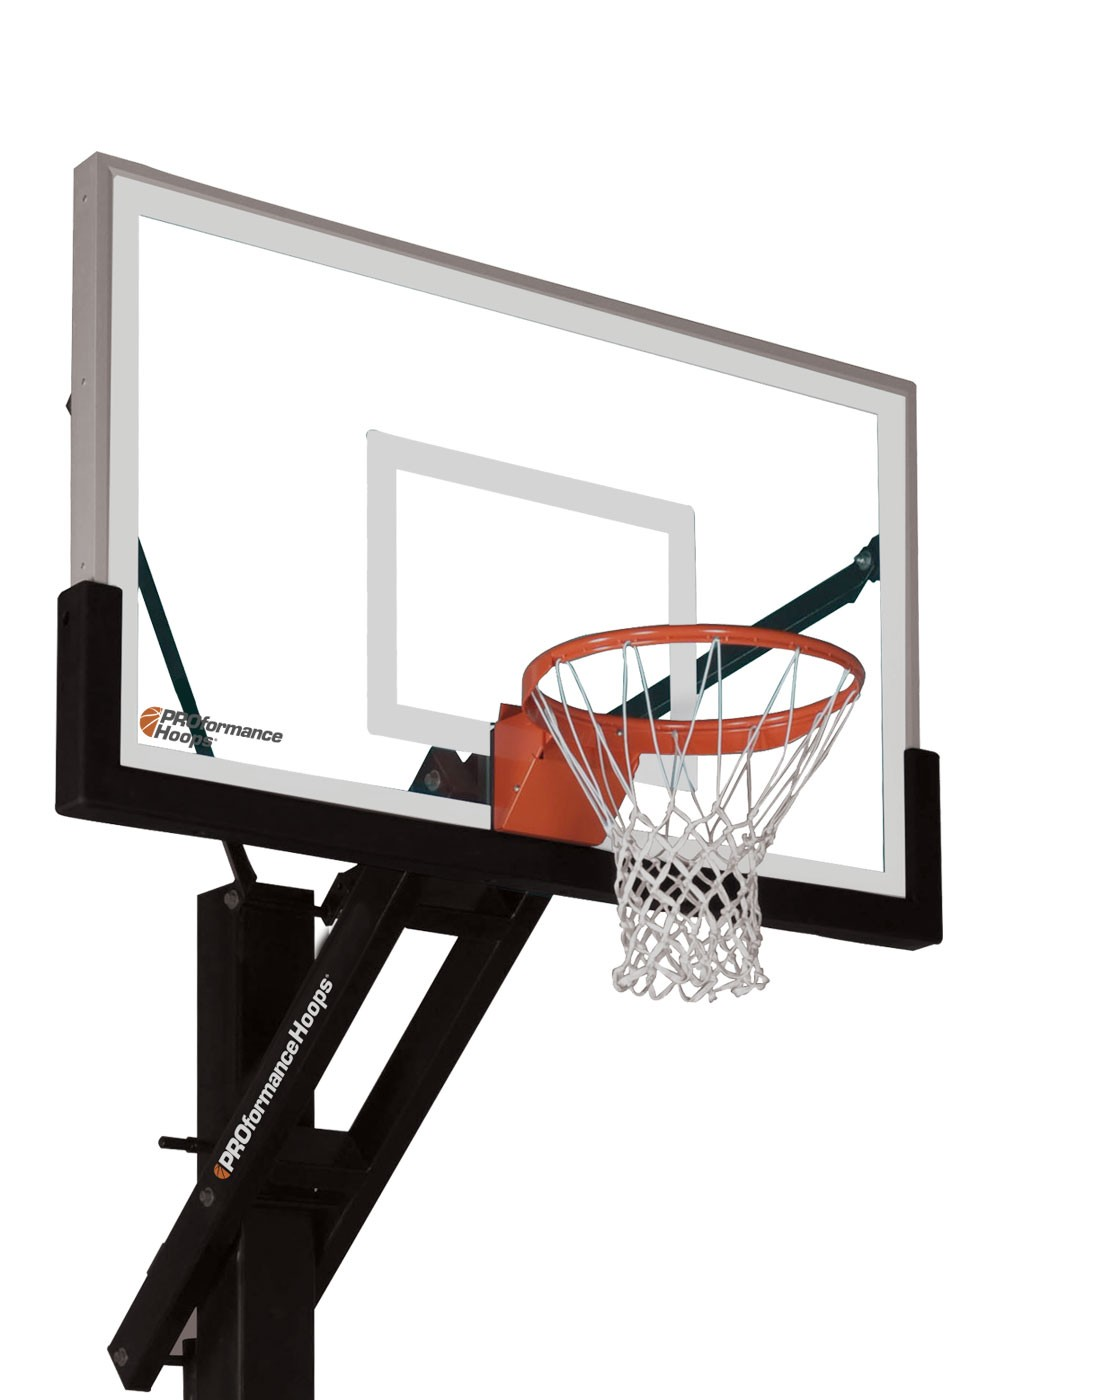 How to Add a Backboard and Hoop to an Existing Basketball Pole How to Add a Backboard and Hoop to an Existing Basketball Pole new images